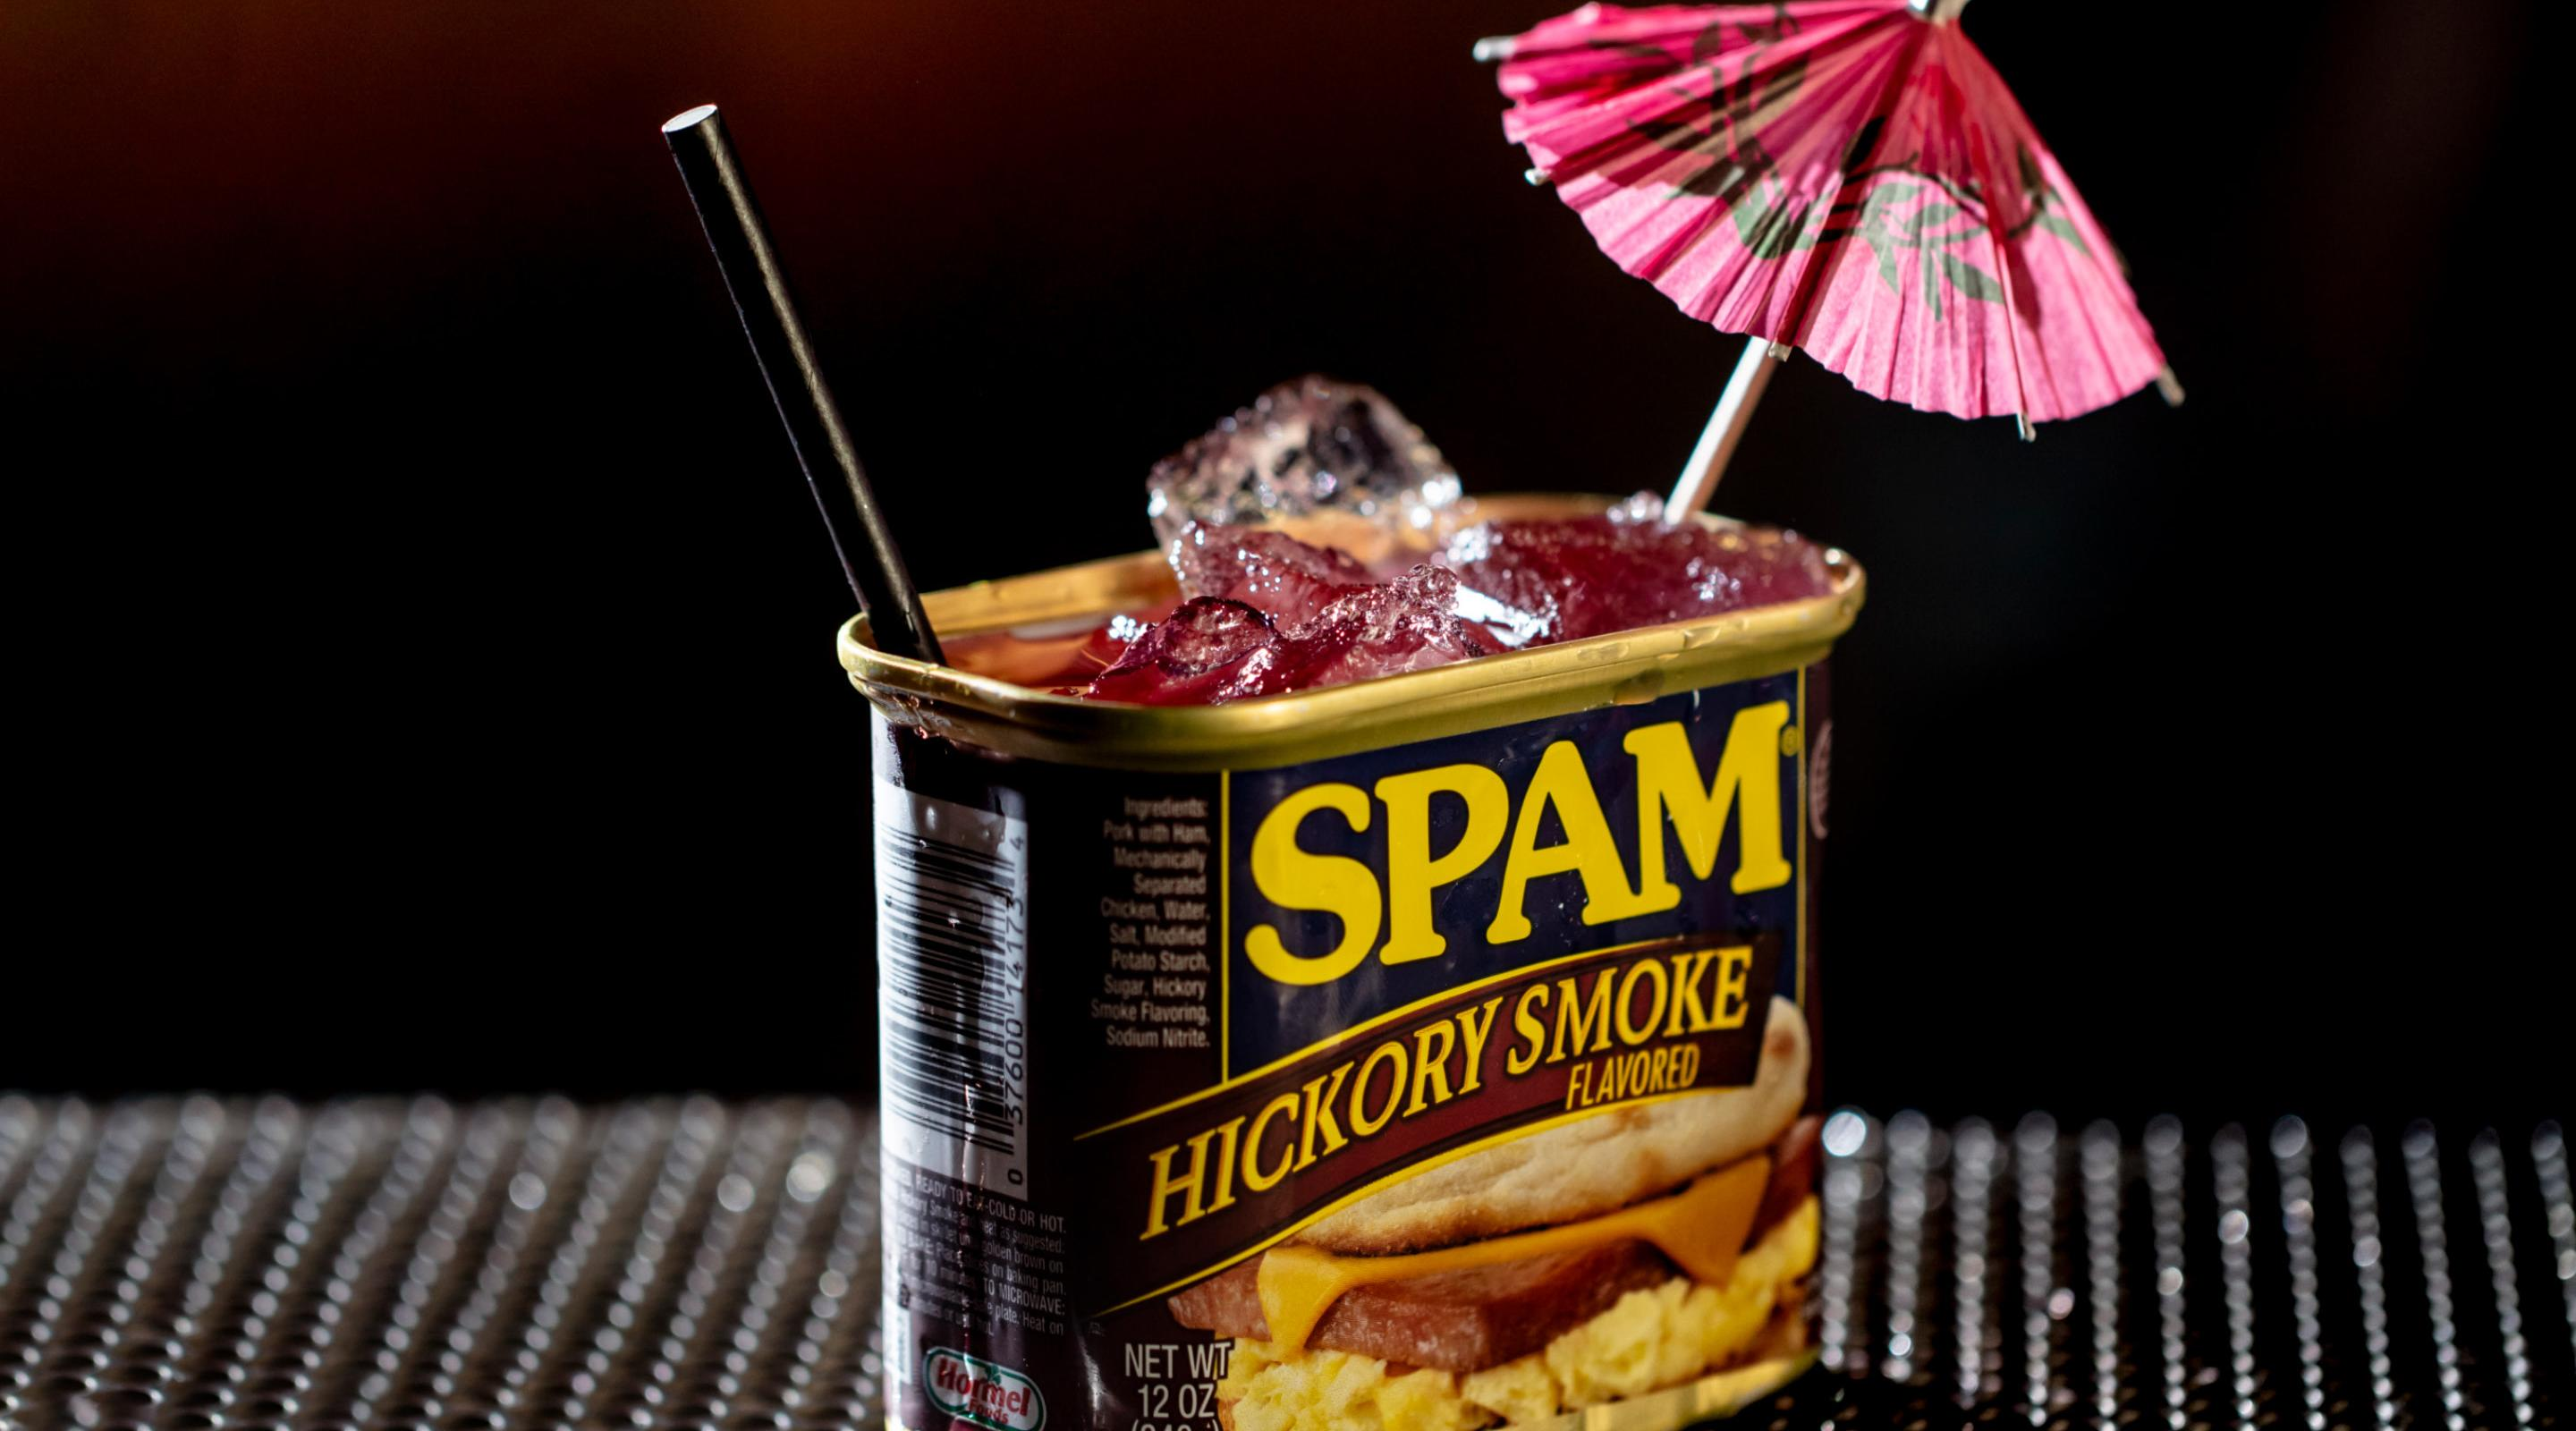 A cocktail with the Spam can on the bar.